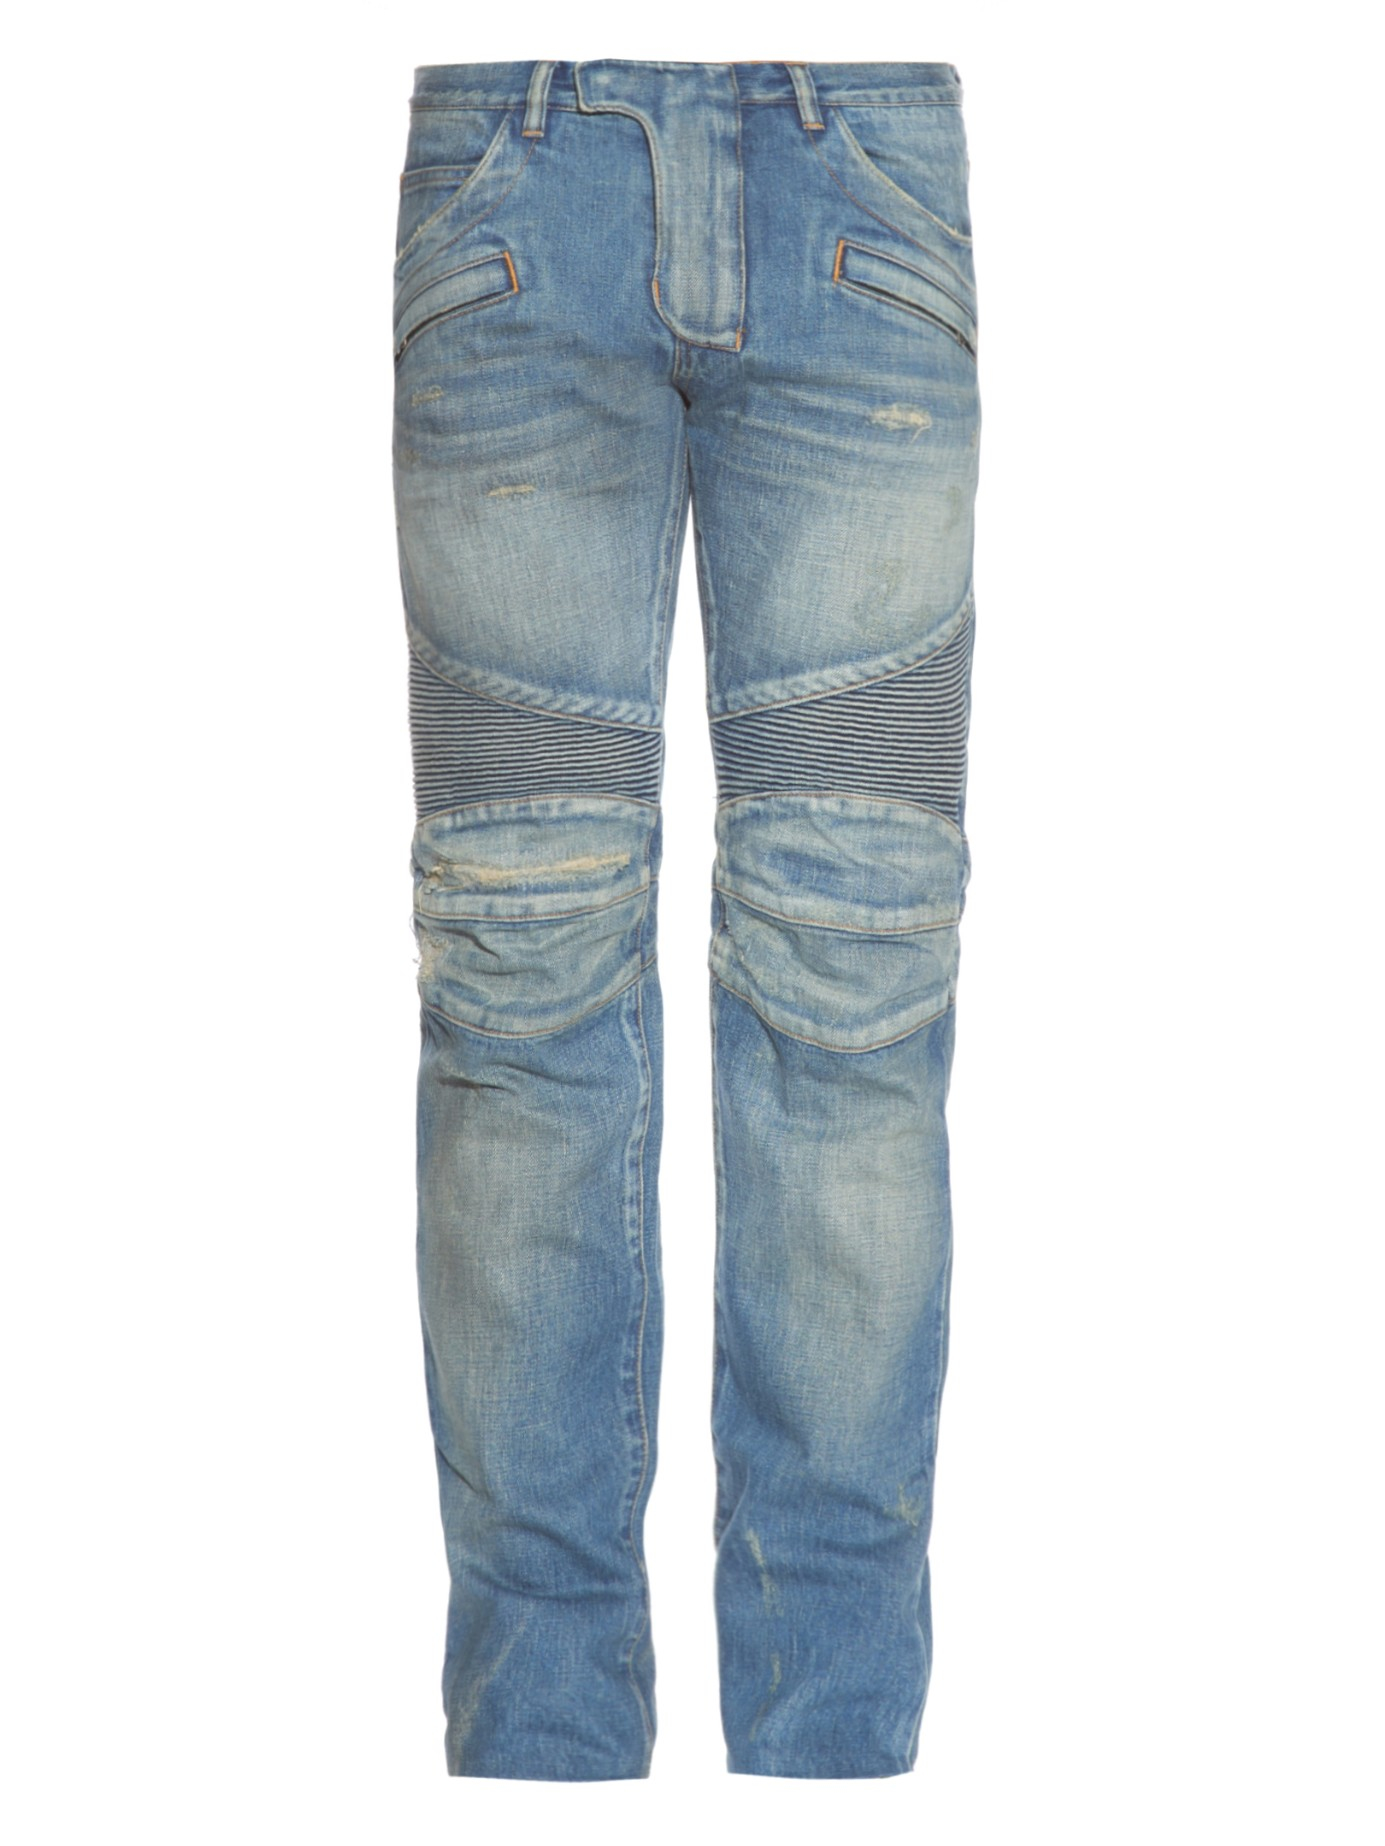 Jeans For Men Slim Fit